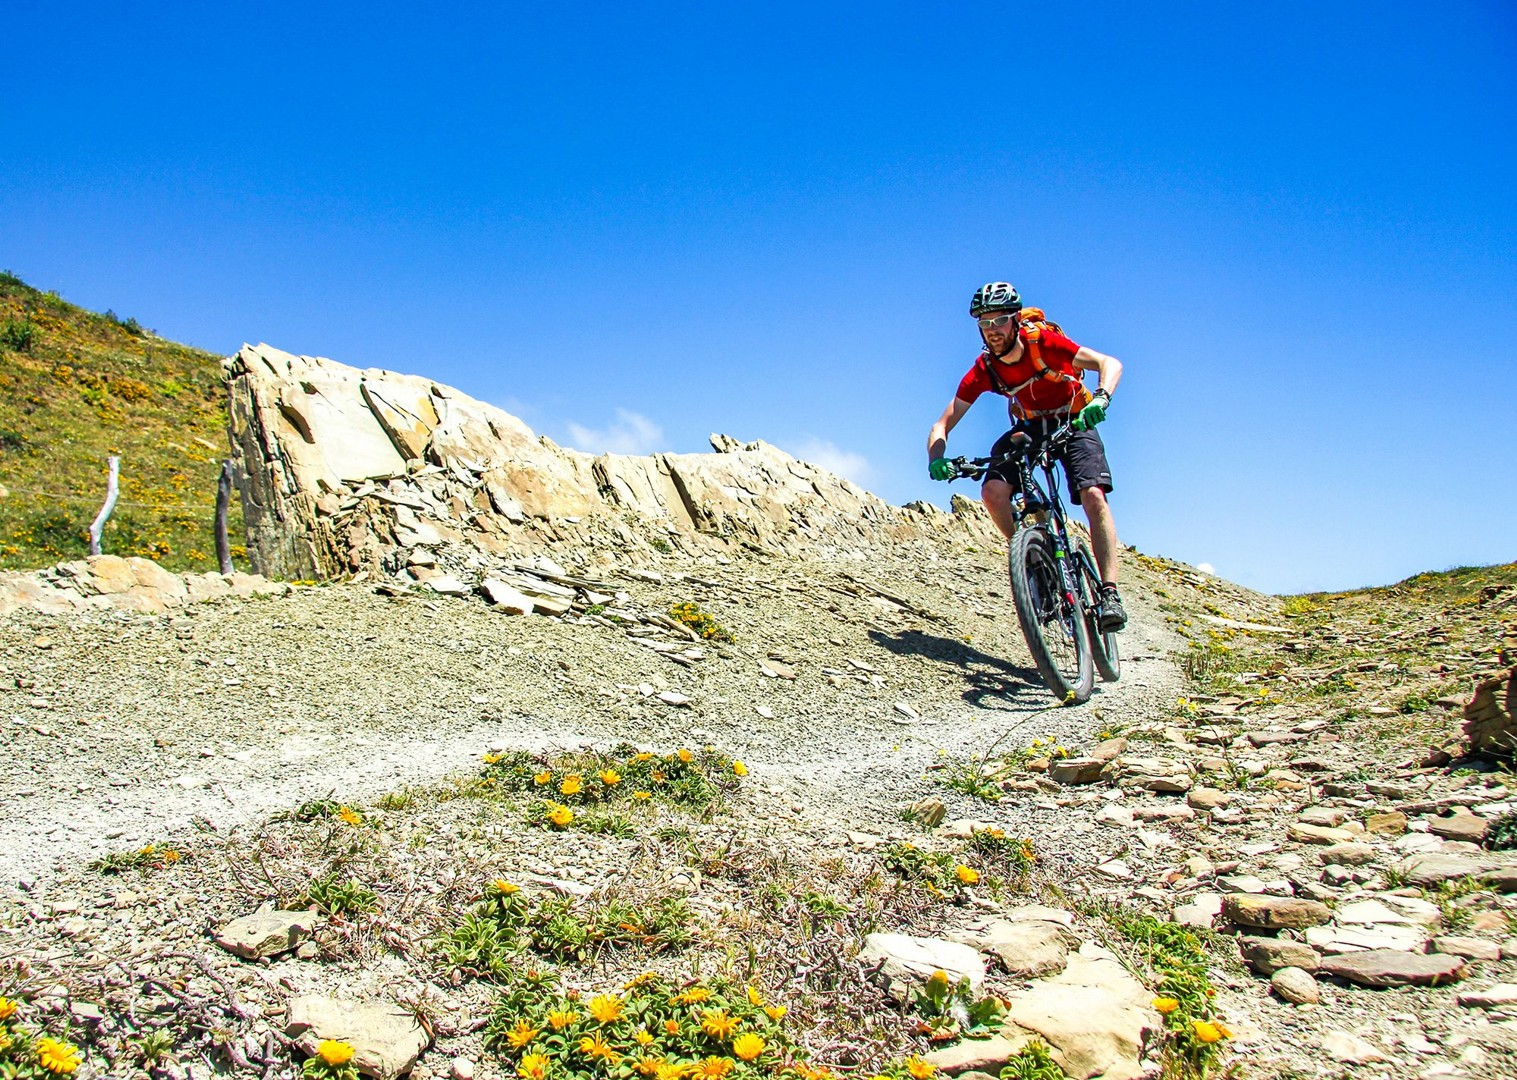 transandaluz14.jpg - Spain - Trans Andaluz - Guided Mountain Bike Holiday - Mountain Biking